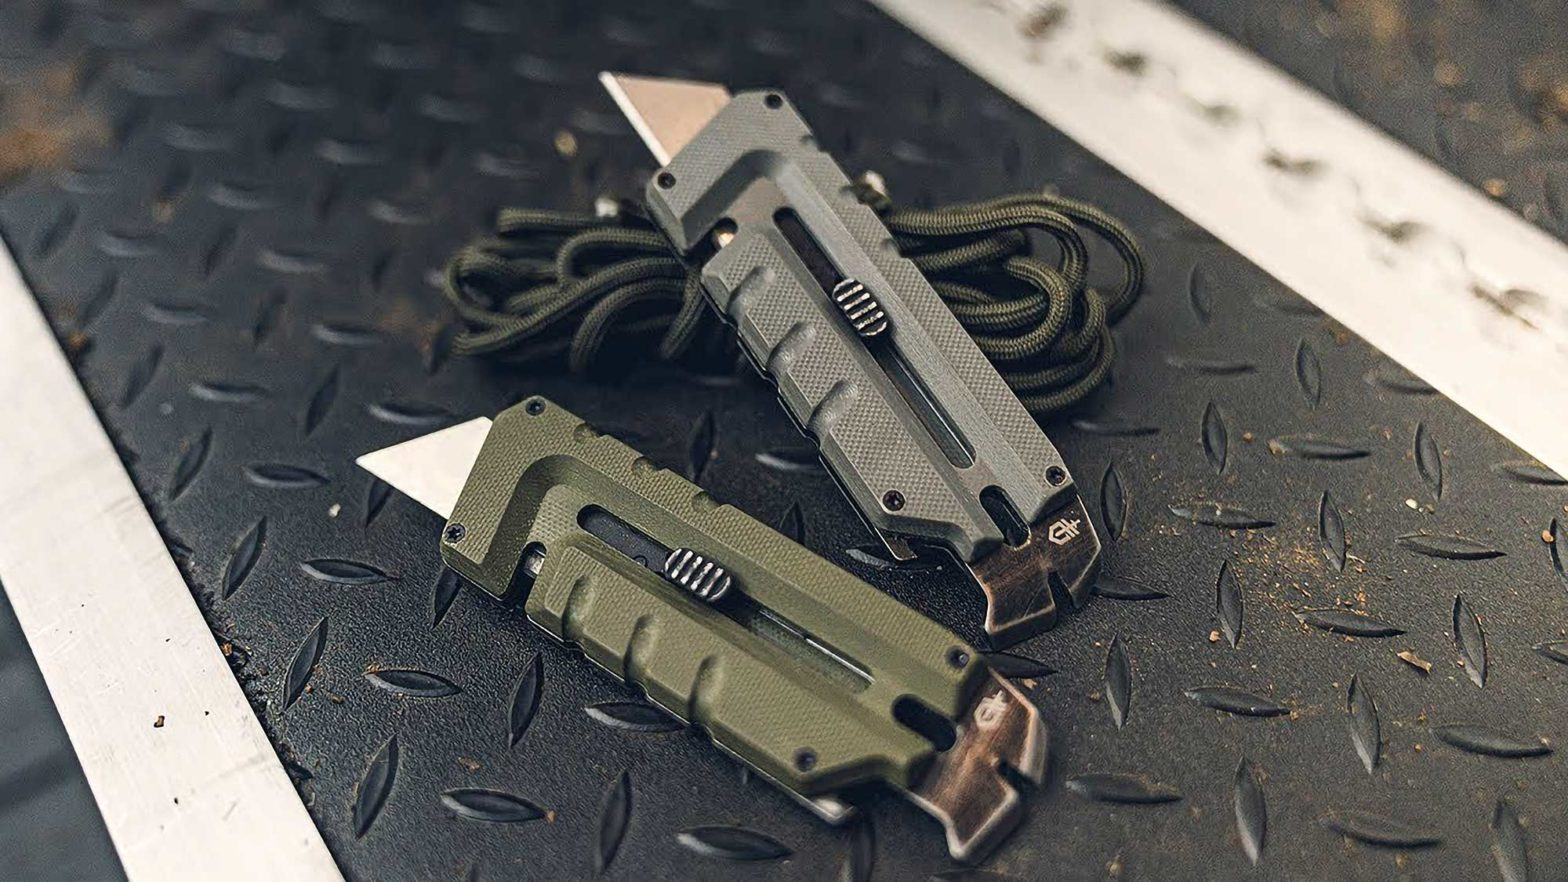 Gerber Prybrid Utility Pocket Knife